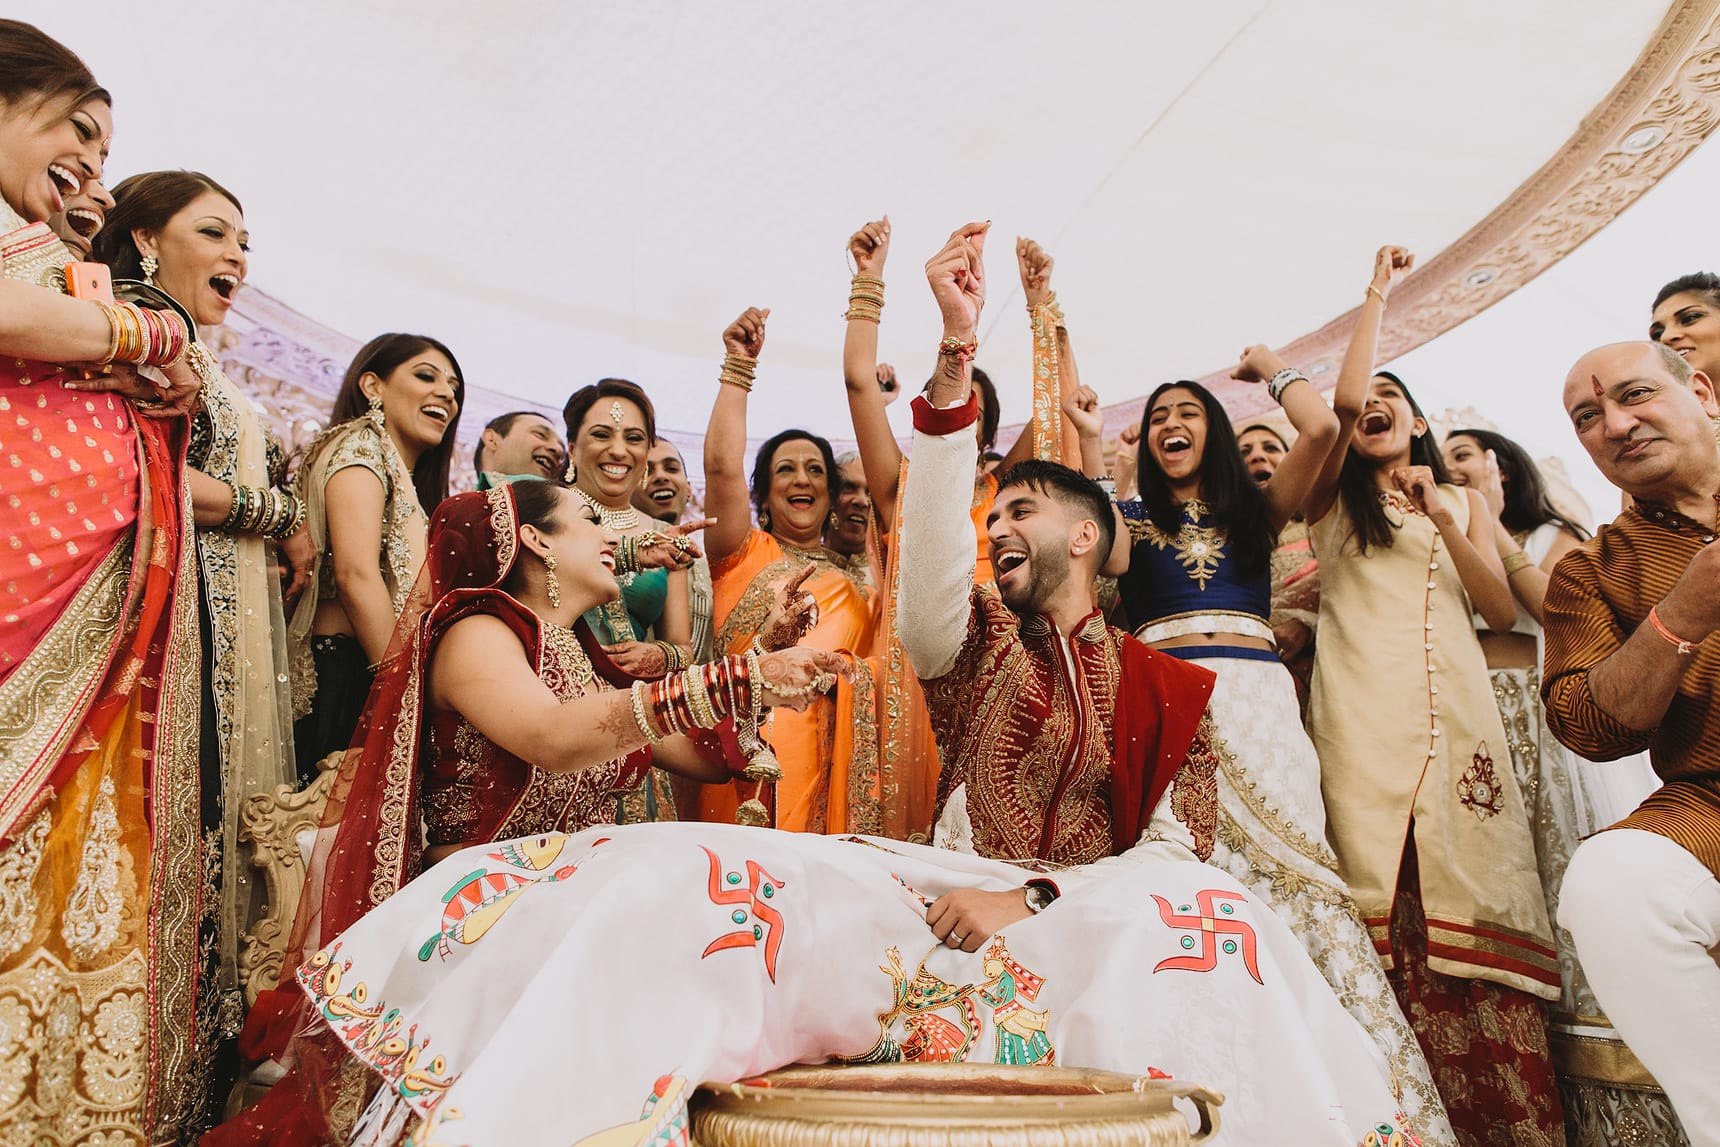 hylands house asian wedding